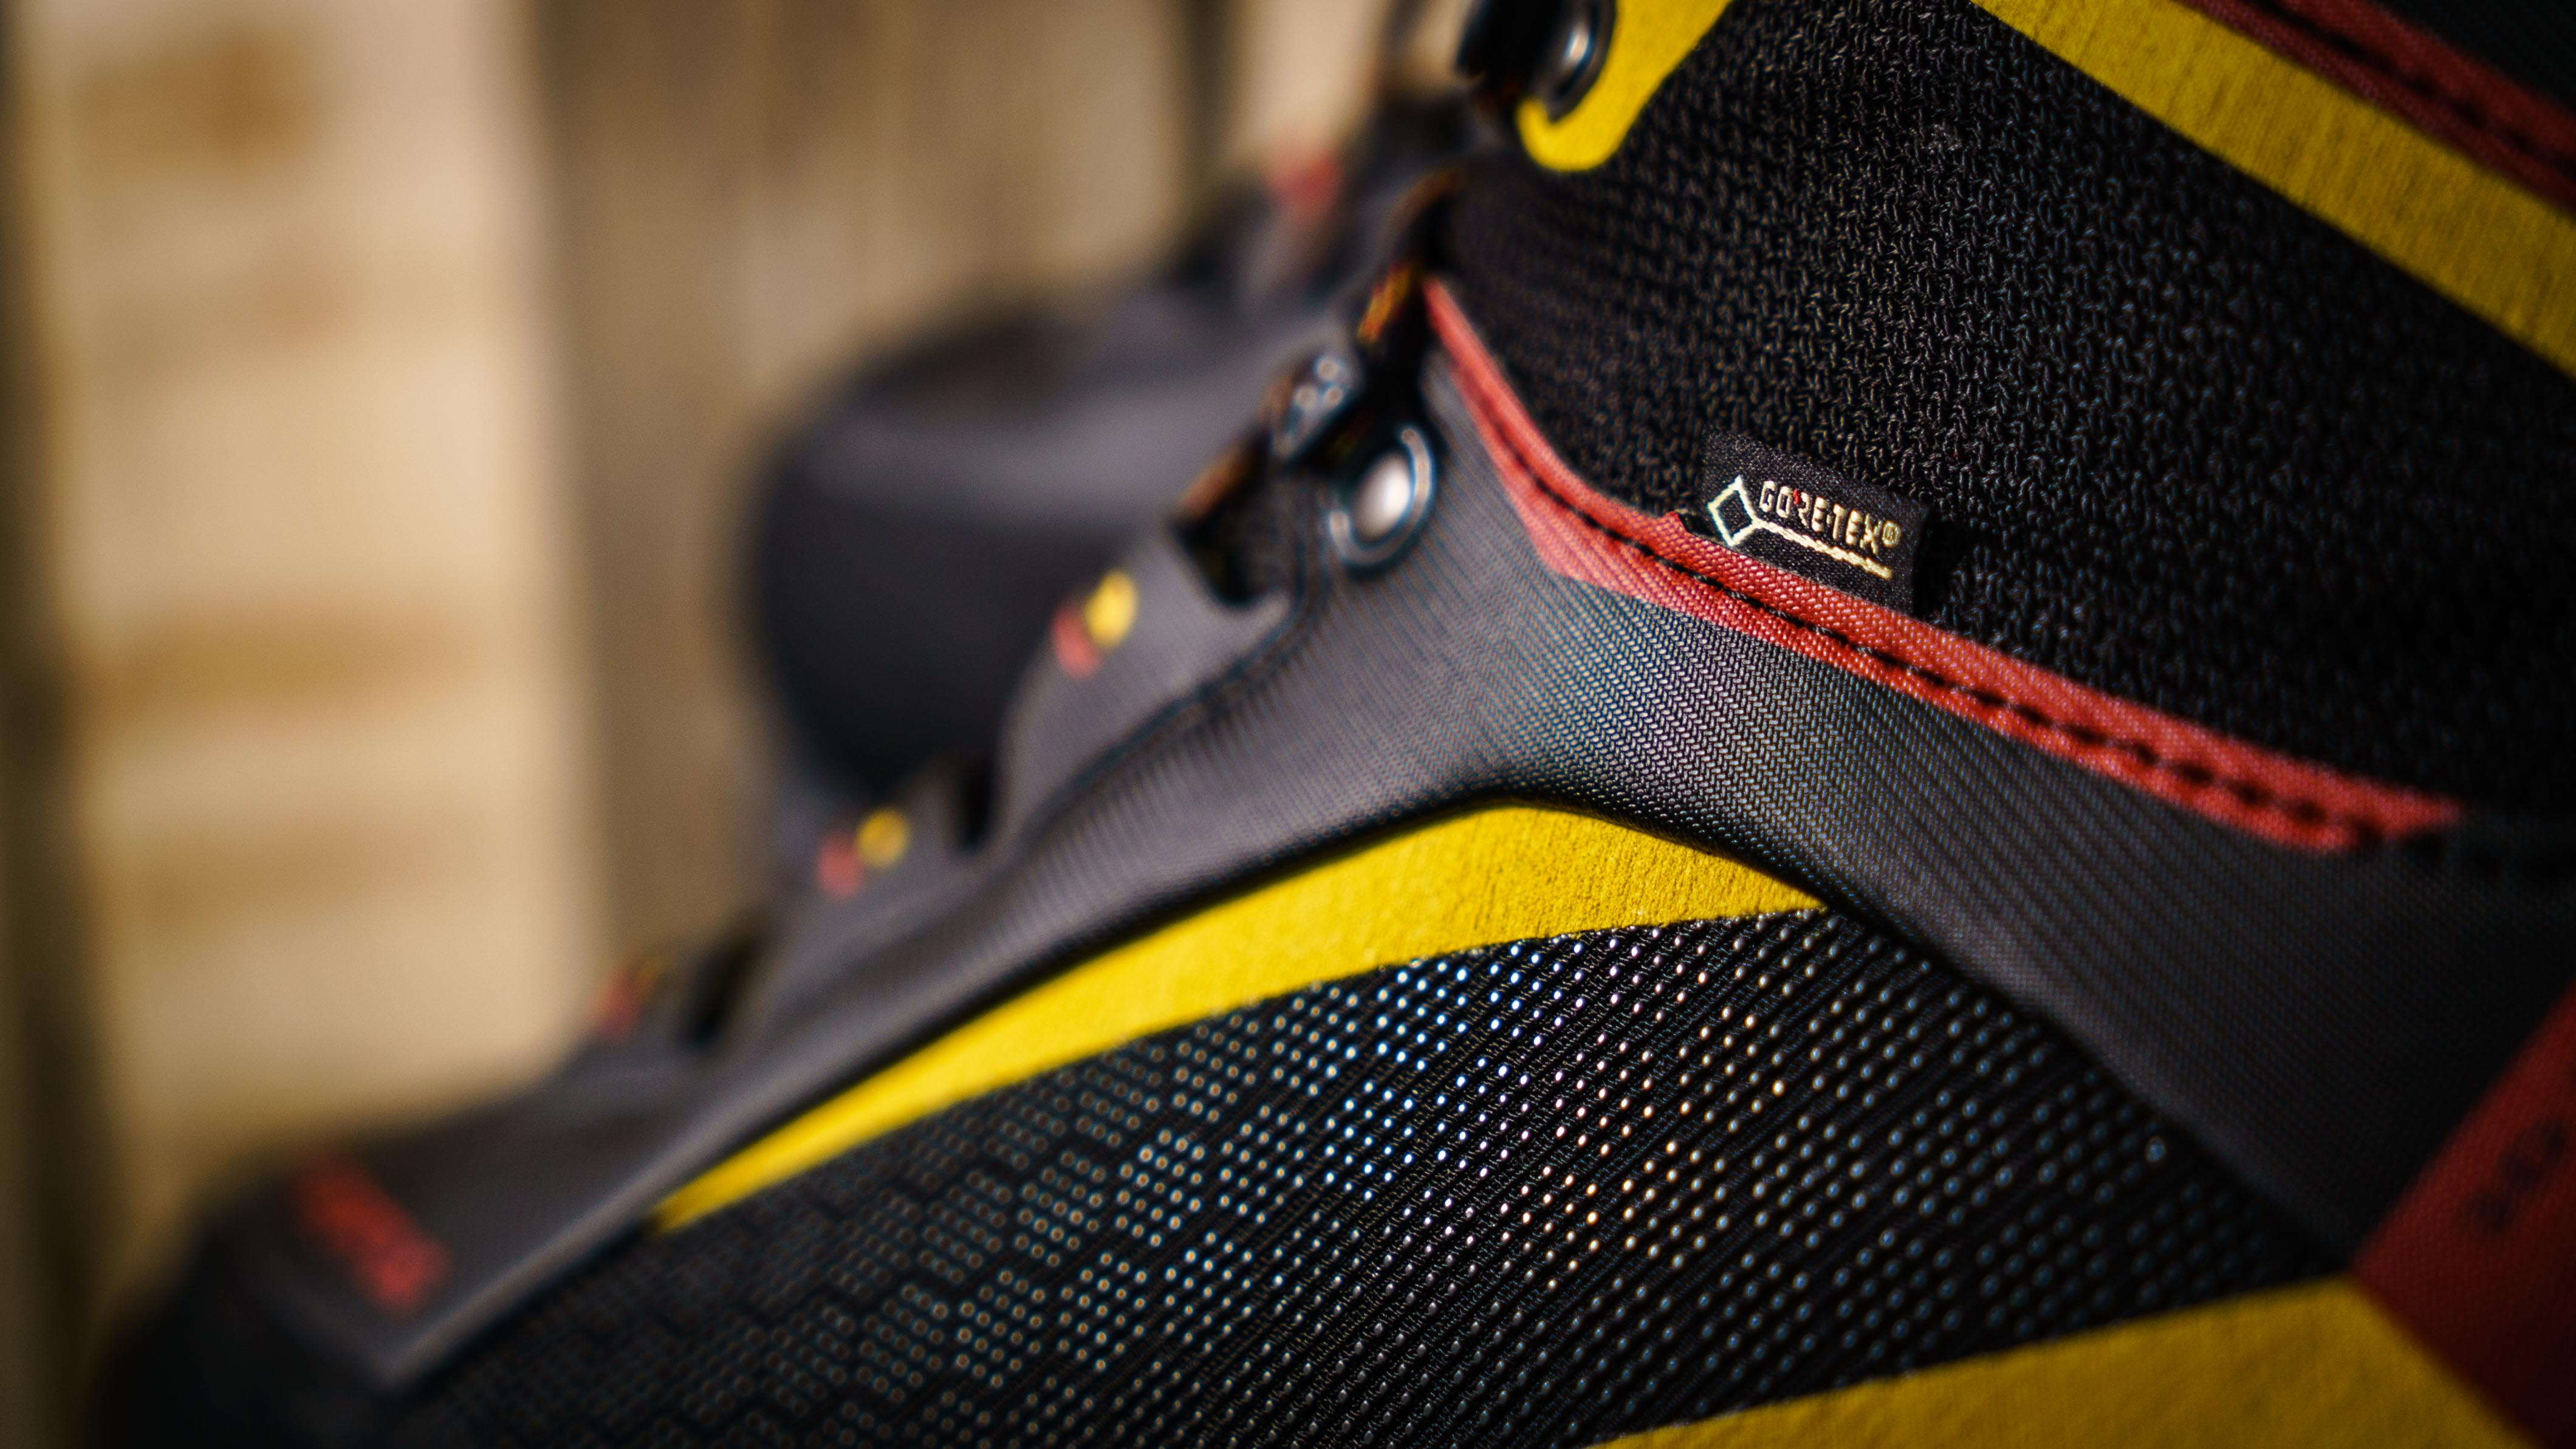 9 Best Mountaineering Boots images | Mountaineering boots